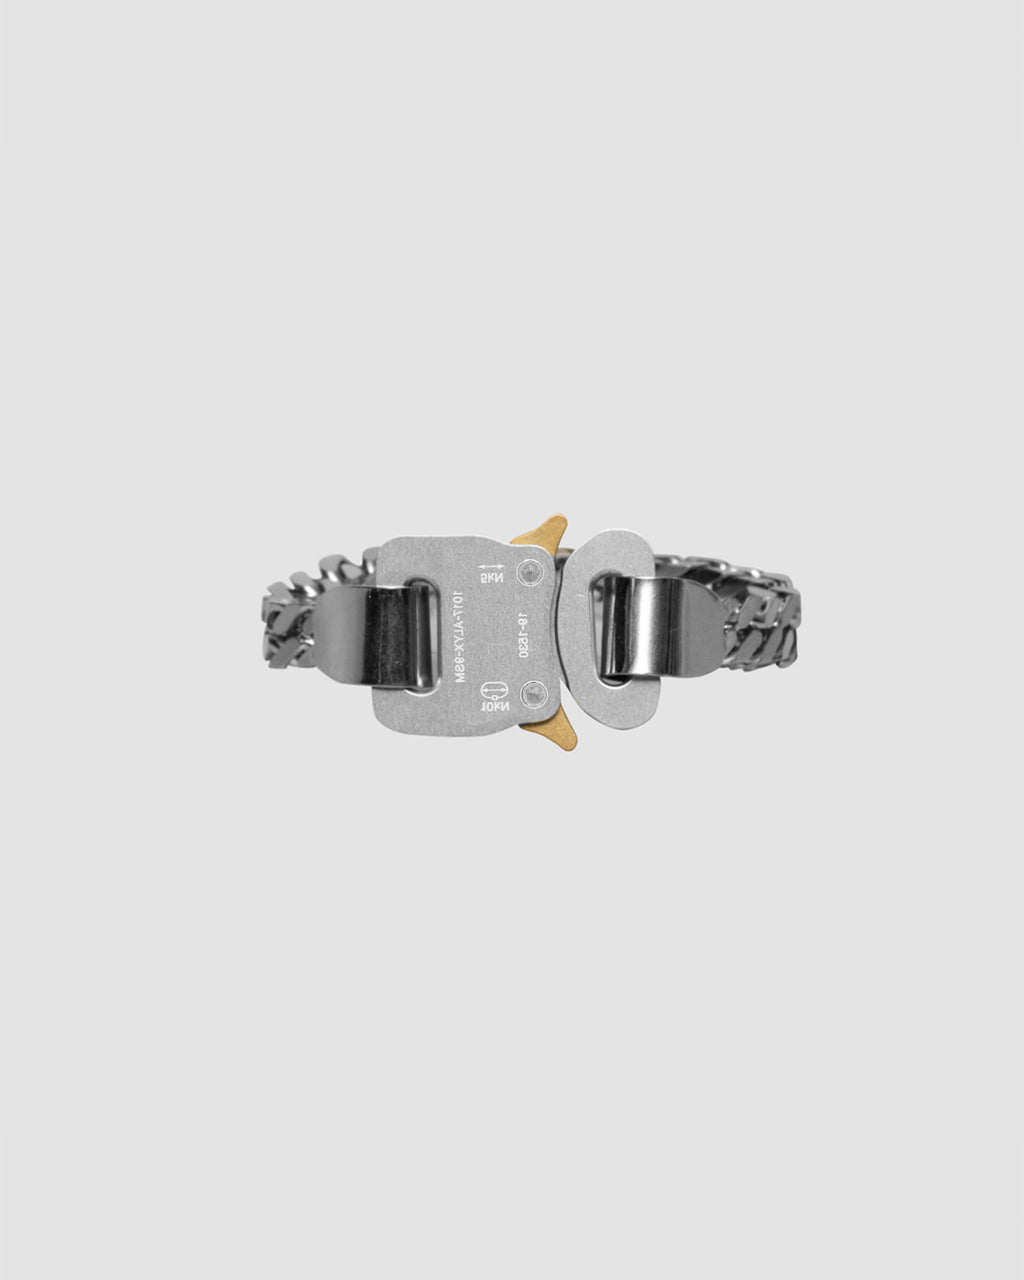 1017 ALYX 9SM | RIVER LINK BRACELET | Jewellery | Accessories, F19, Jewellery, Man, Silver, Woman